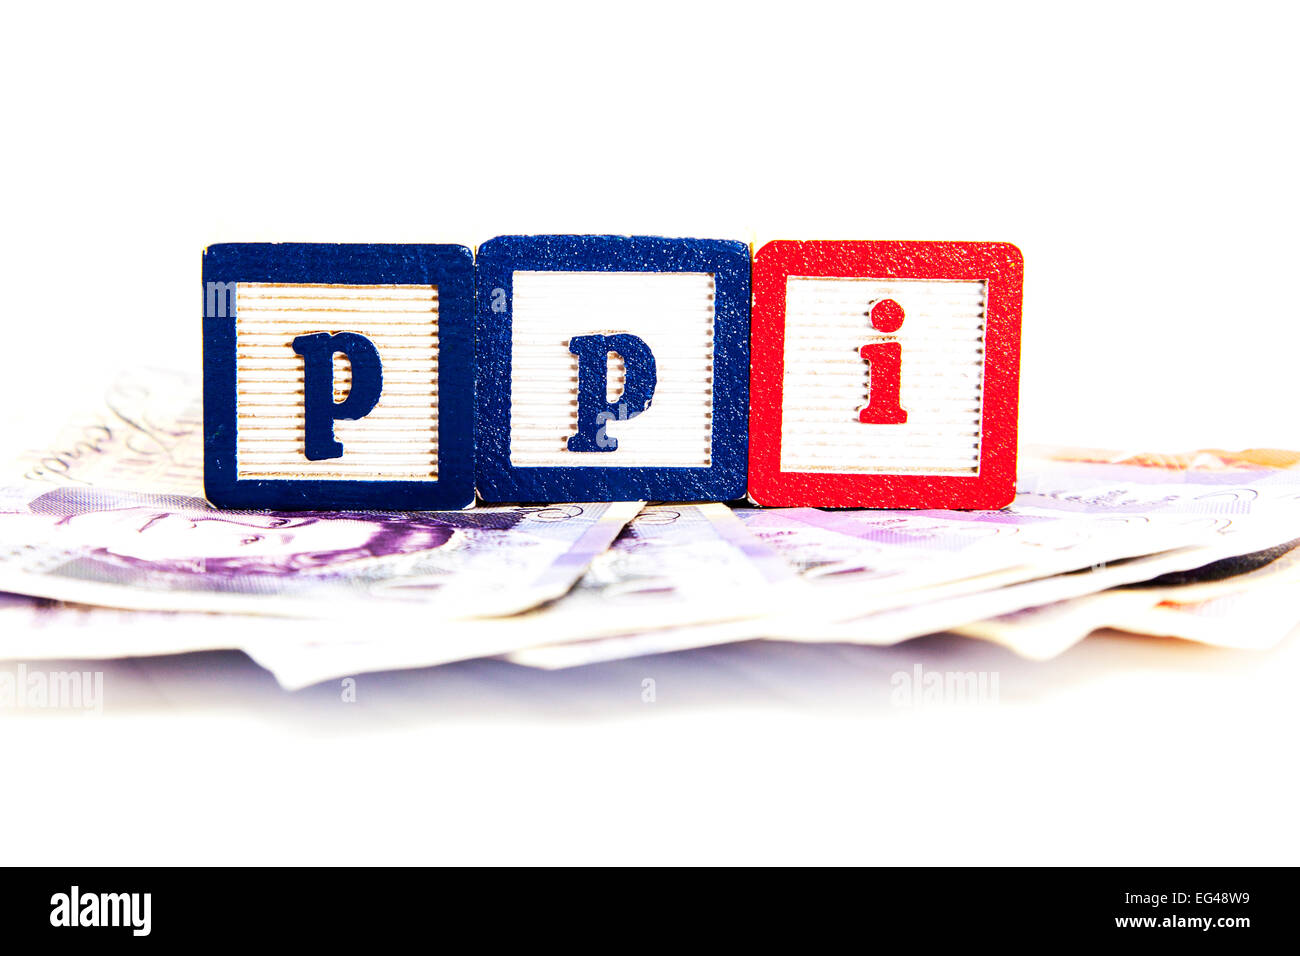 Ppi mis-selling scandal payment protection scheme money payback claim payments insurance banks bank cut out copy - Stock Image